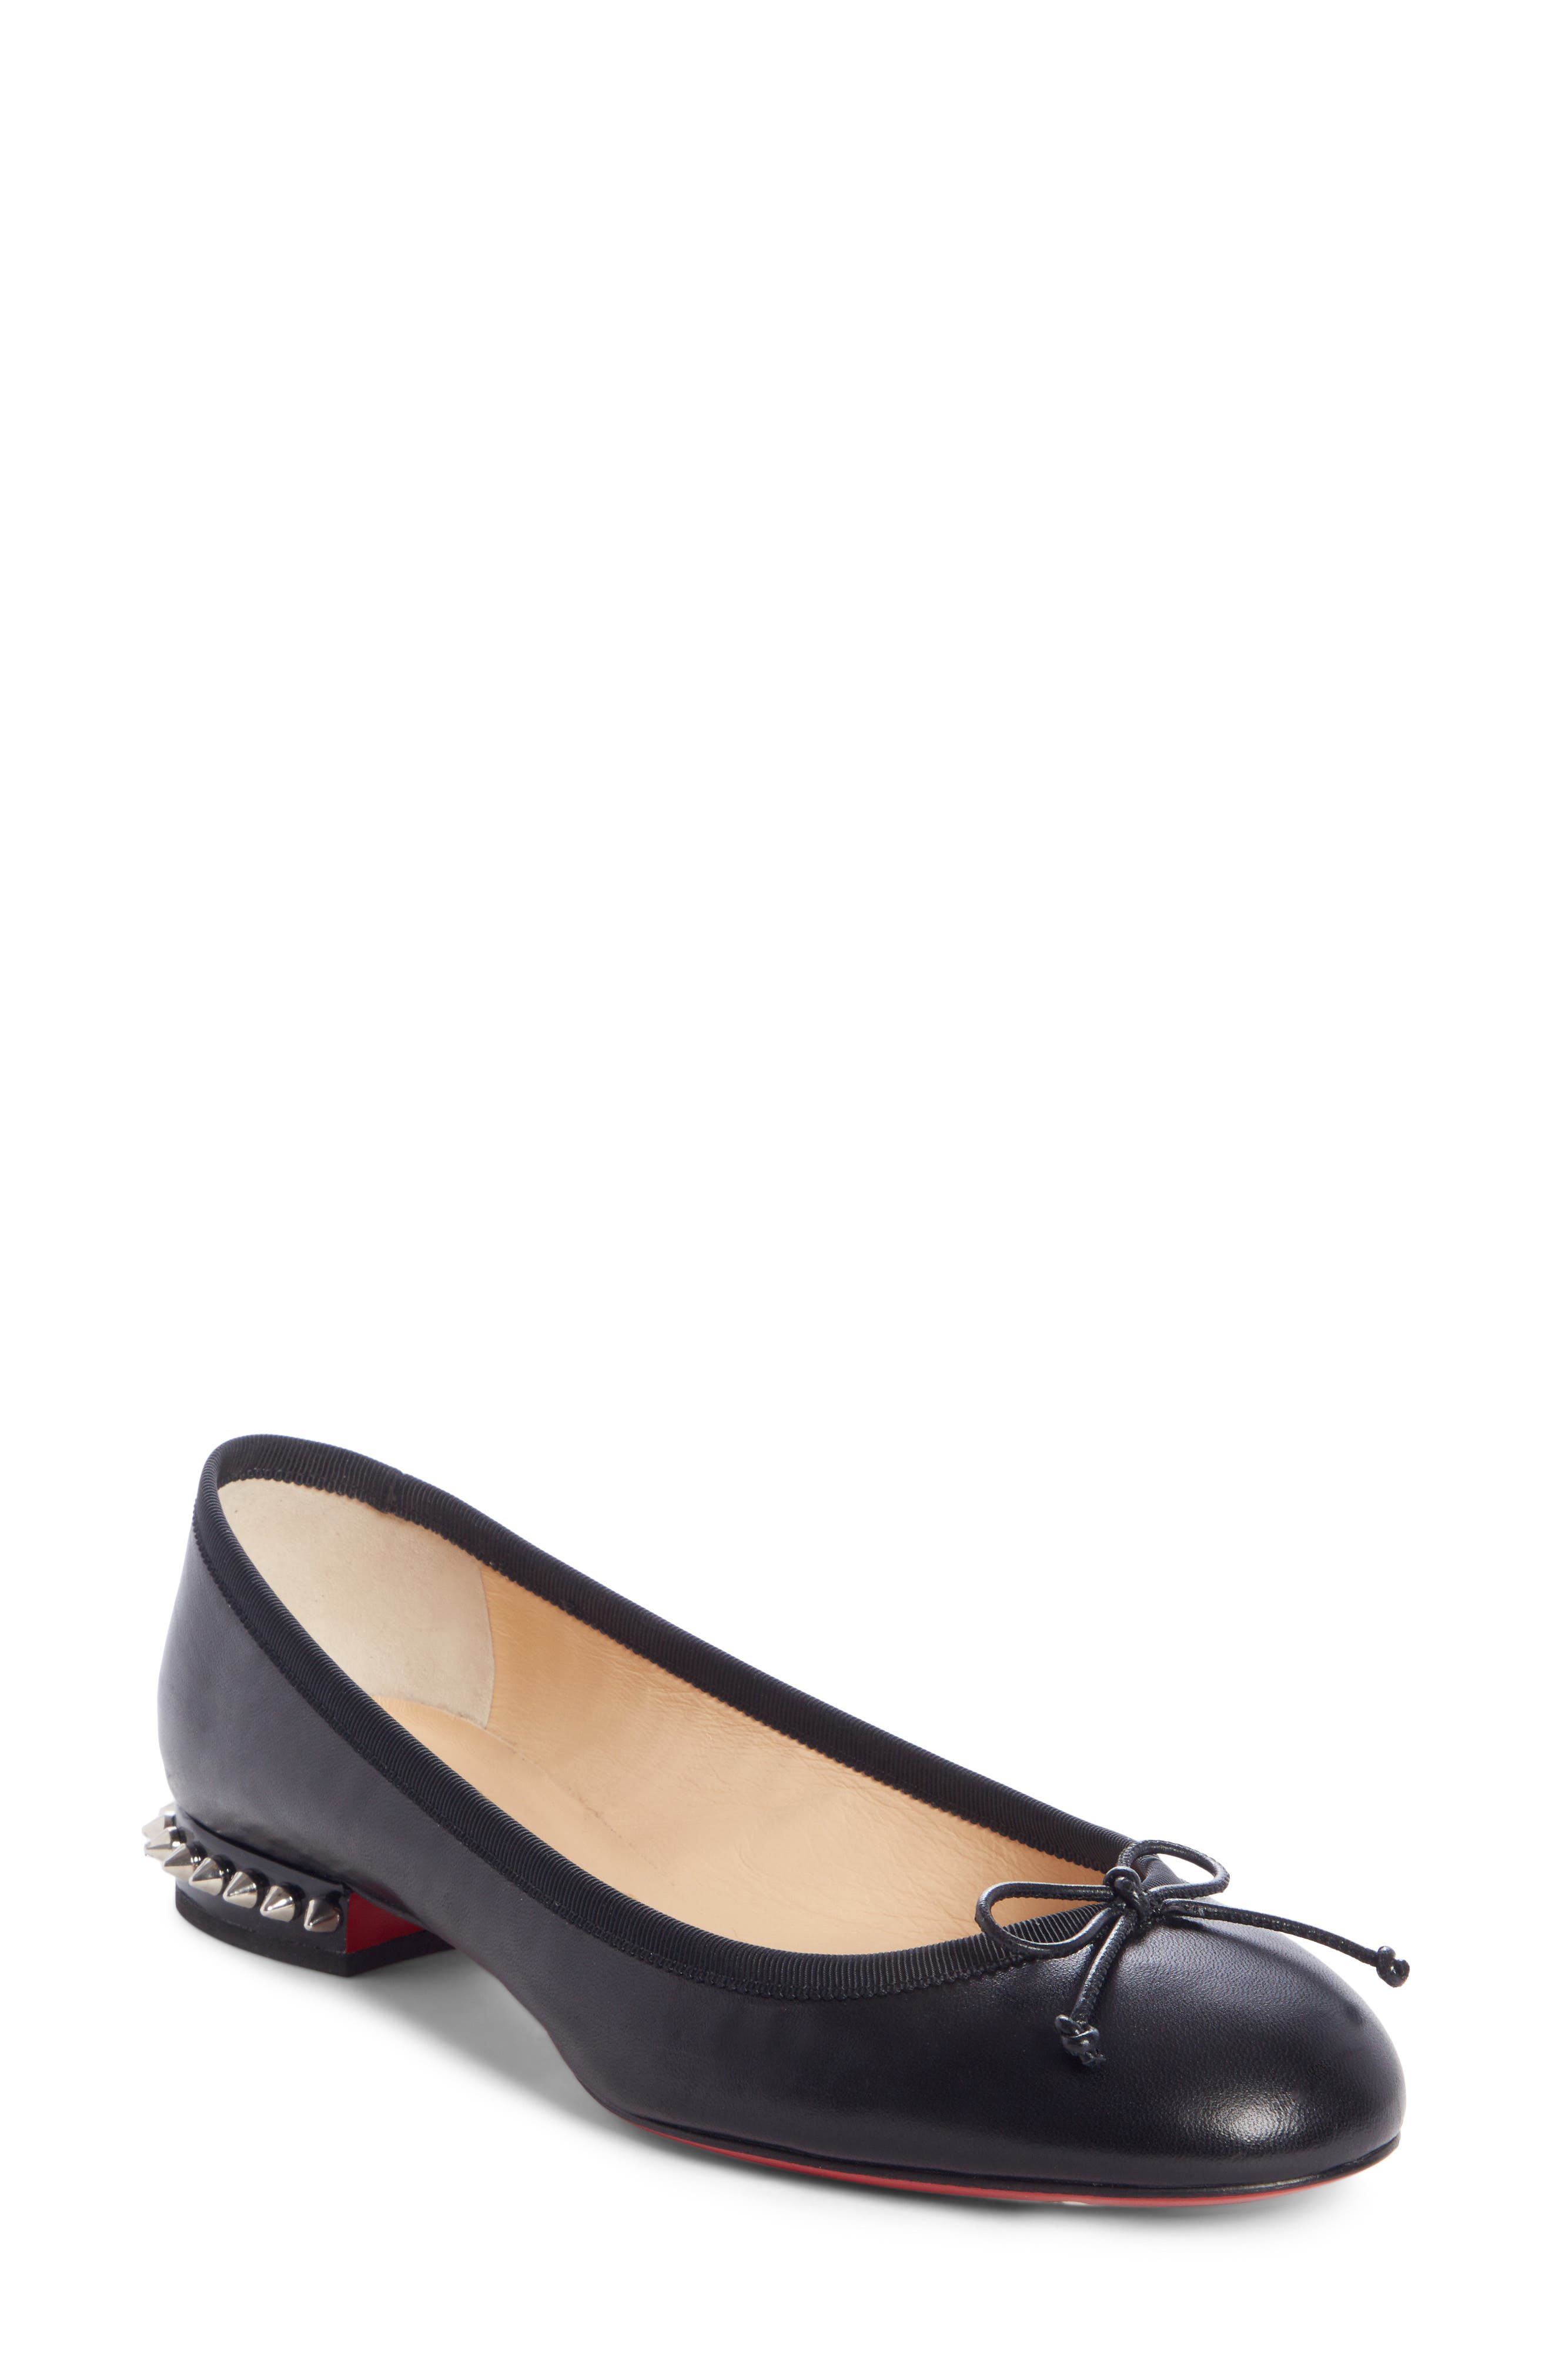 CHRISTIAN LOUBOUTIN, La Massine Spike Flat, Main thumbnail 1, color, BLACK